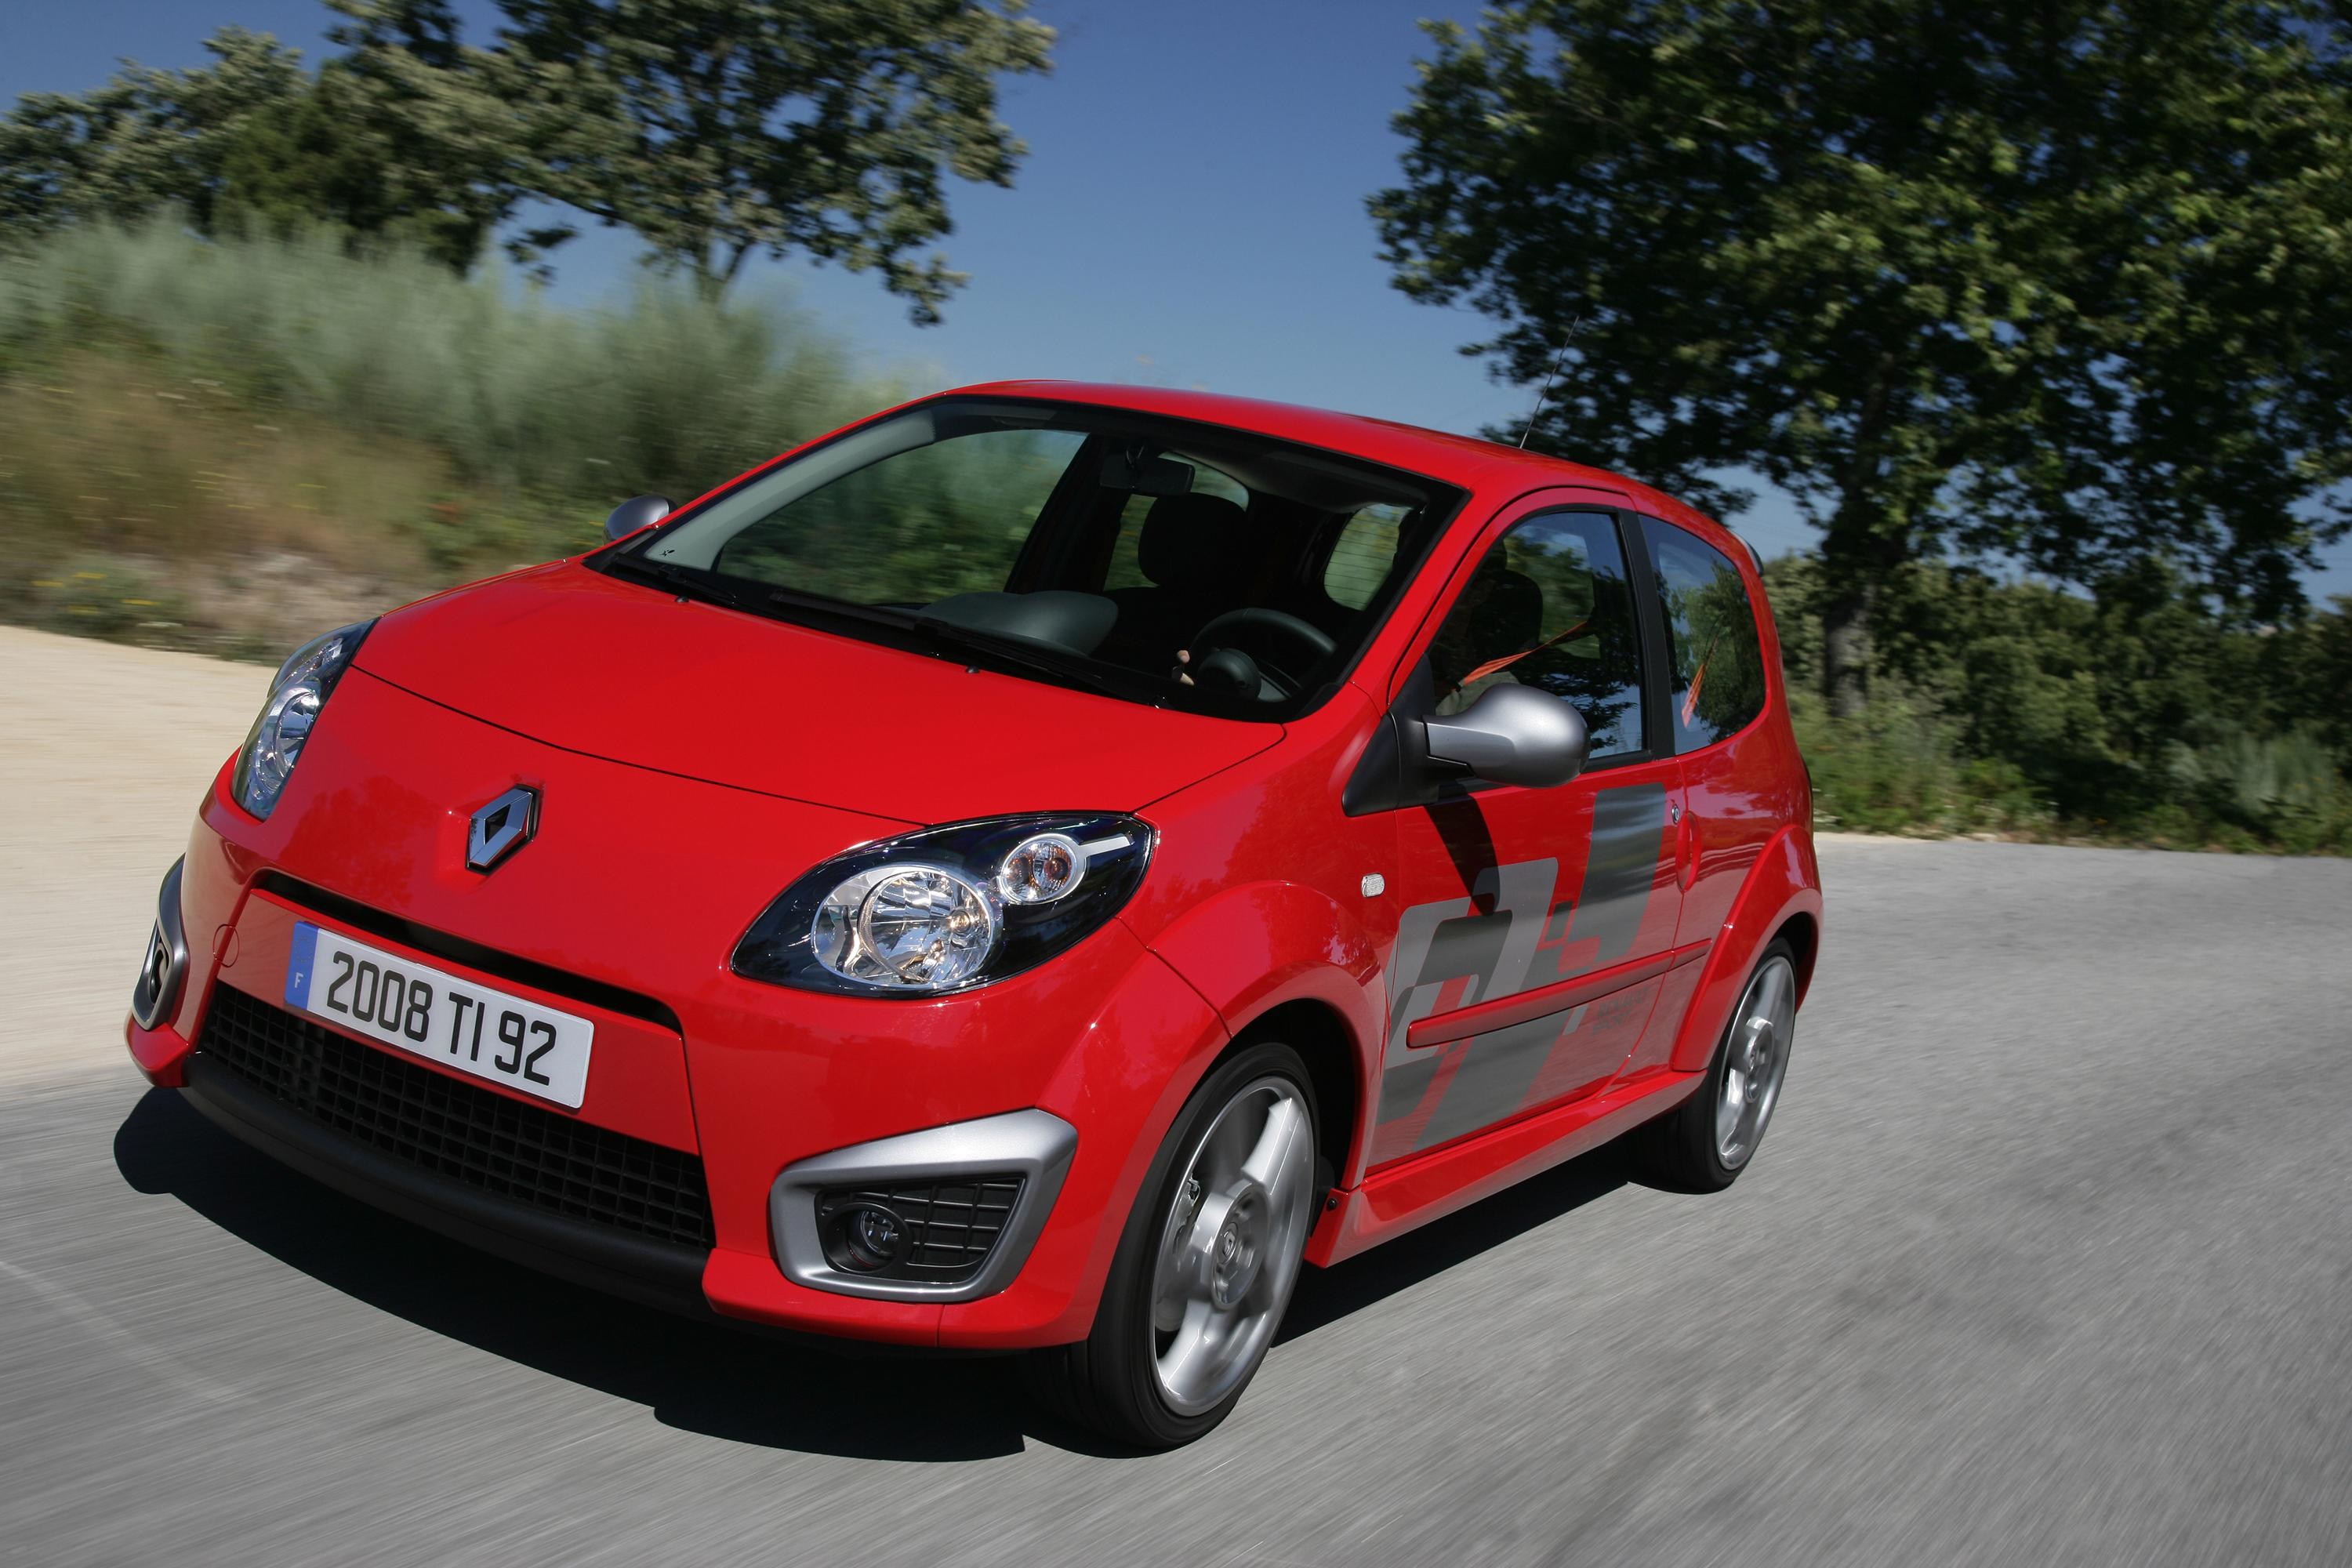 renault twingo sport technical details history photos on better parts ltd. Black Bedroom Furniture Sets. Home Design Ideas